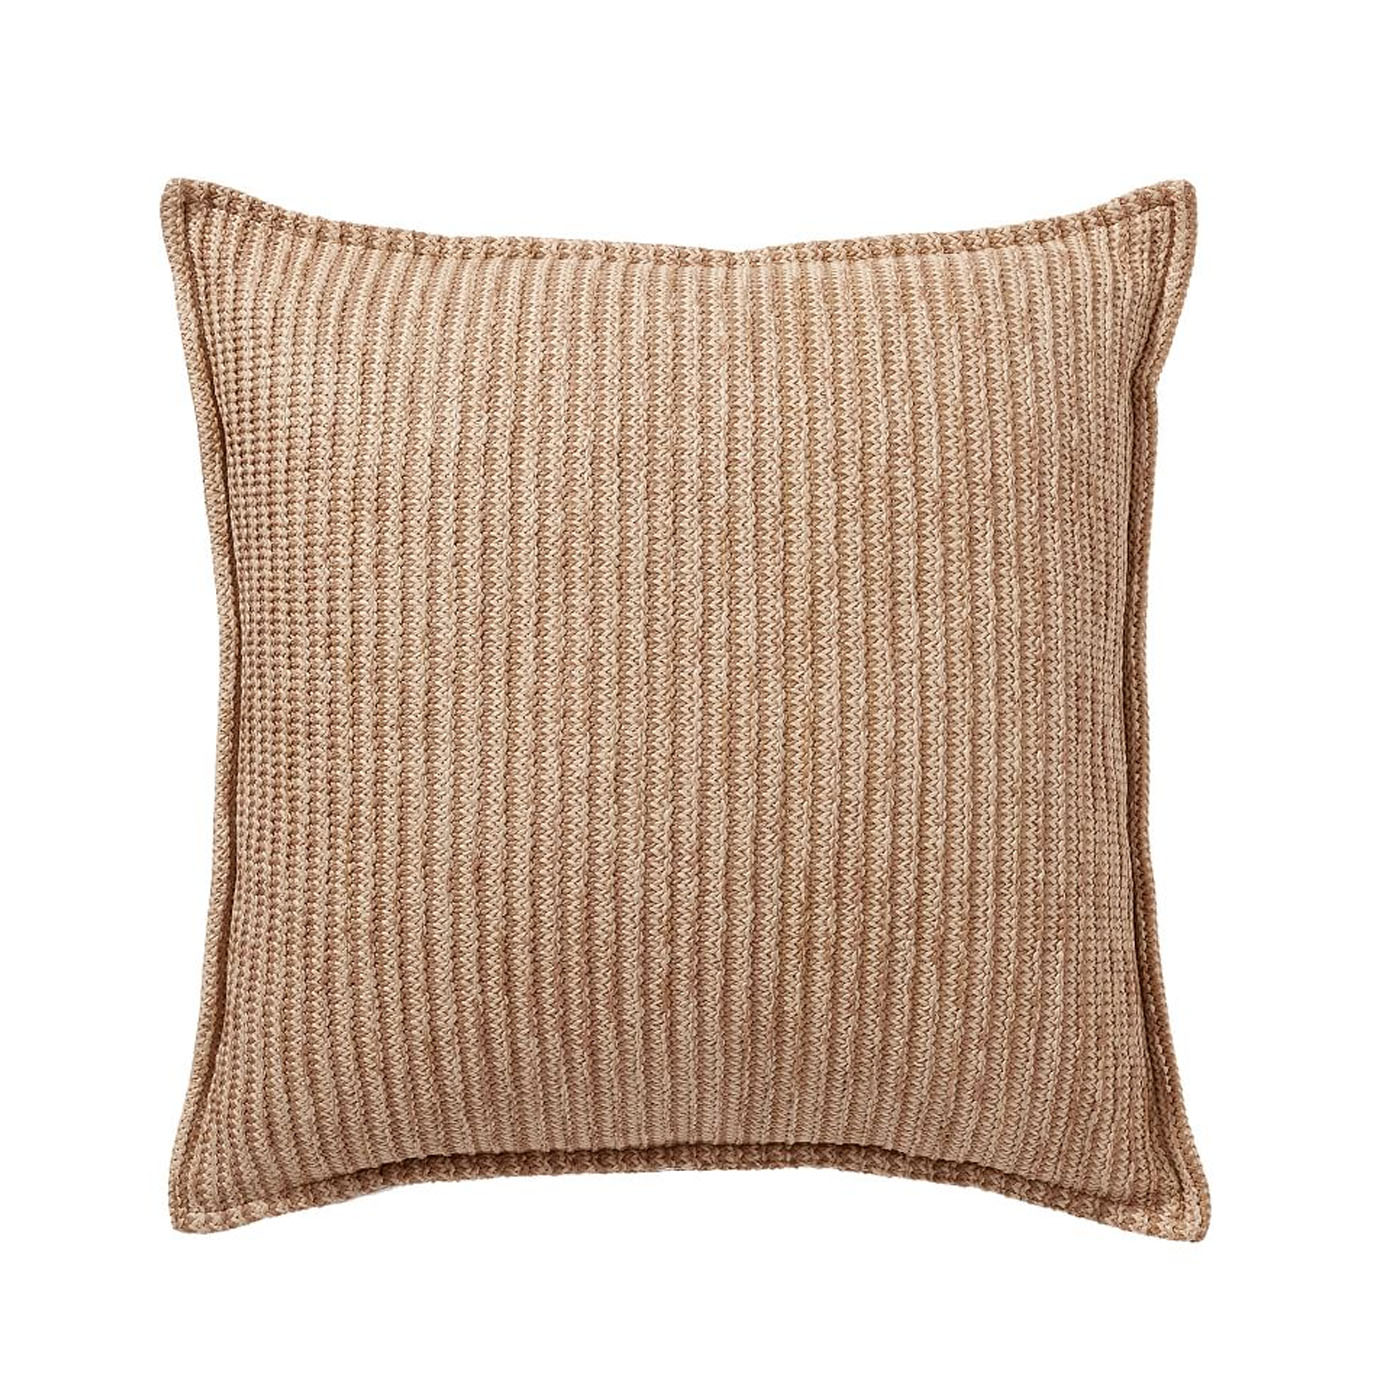 This natural throw pillow is affordable and a perfect addition to your outdoor decor! #ABlissfulNest